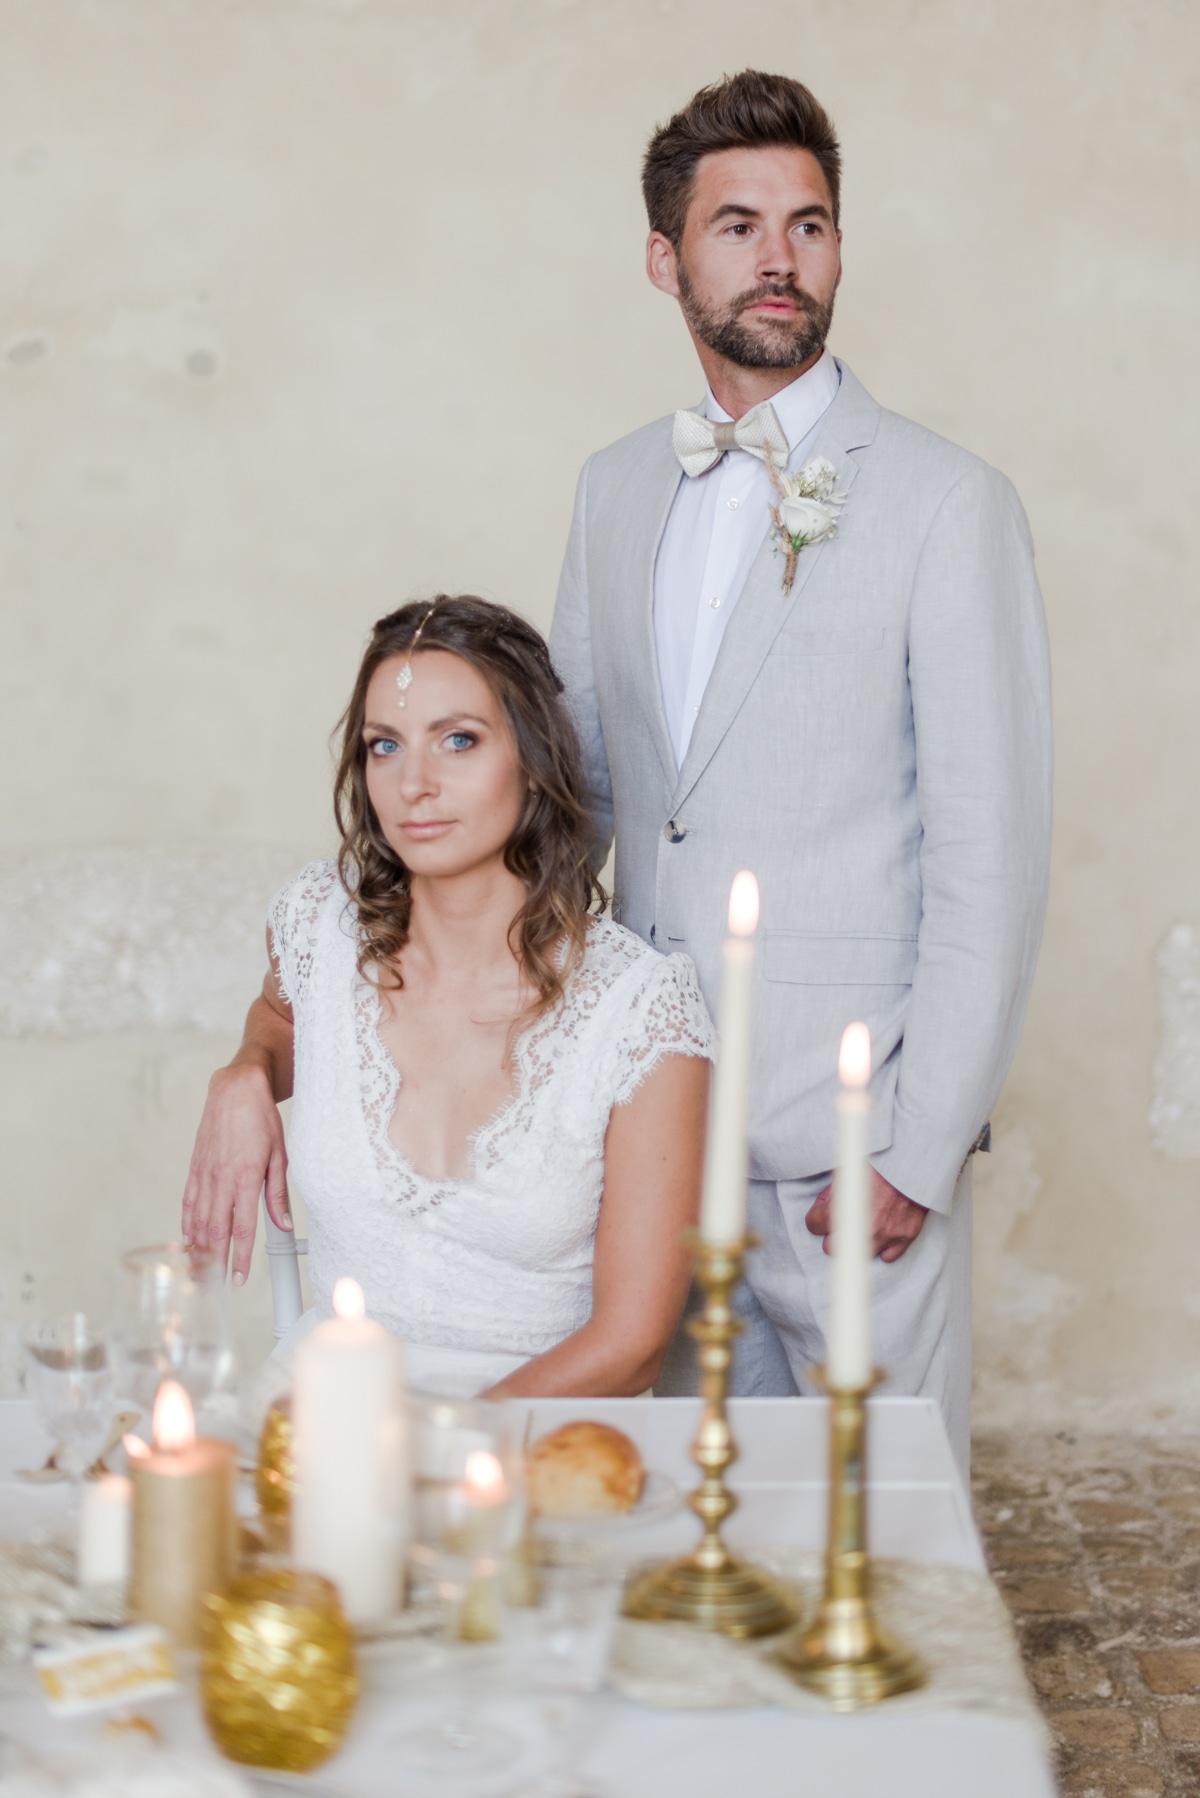 A French Castle Destination Wedding in White and Gold